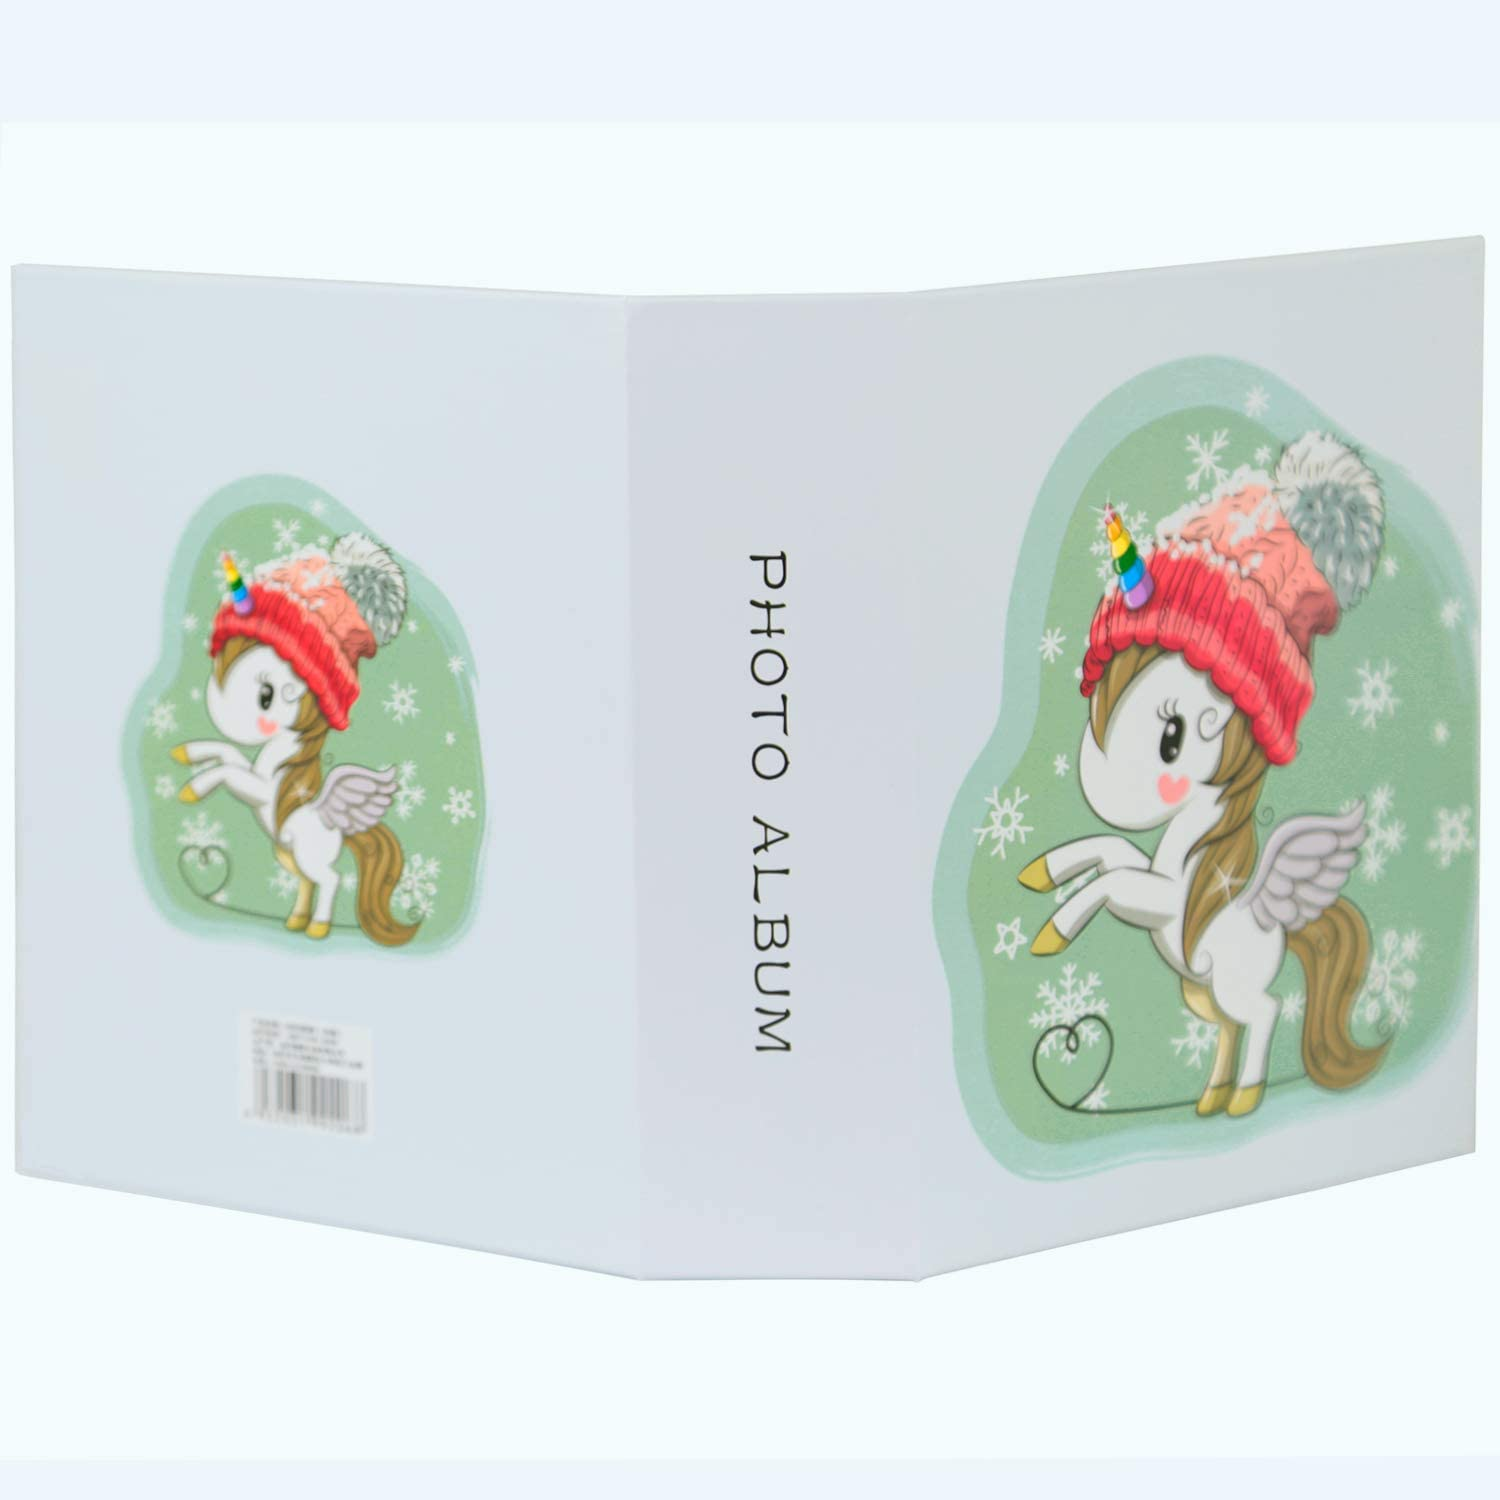 WLC photo album small students photo album,100 photos,colorful and lovely look,peaceful deer